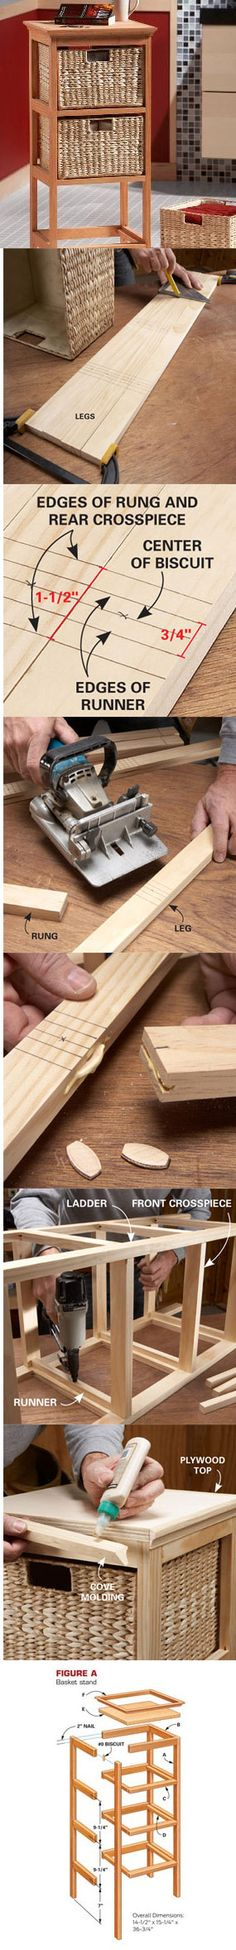 The secret to this handsome, durable basket stand is a biscuit joiner, which creates super-tough joints without metal fasteners or exposed wood dowels. Learn how to build this amazingly versatile storage stand at http://www.familyhandyman.com/DIY-Projects/Woodworking/Woodworking-Projects/how-to-build-a-basket-stand